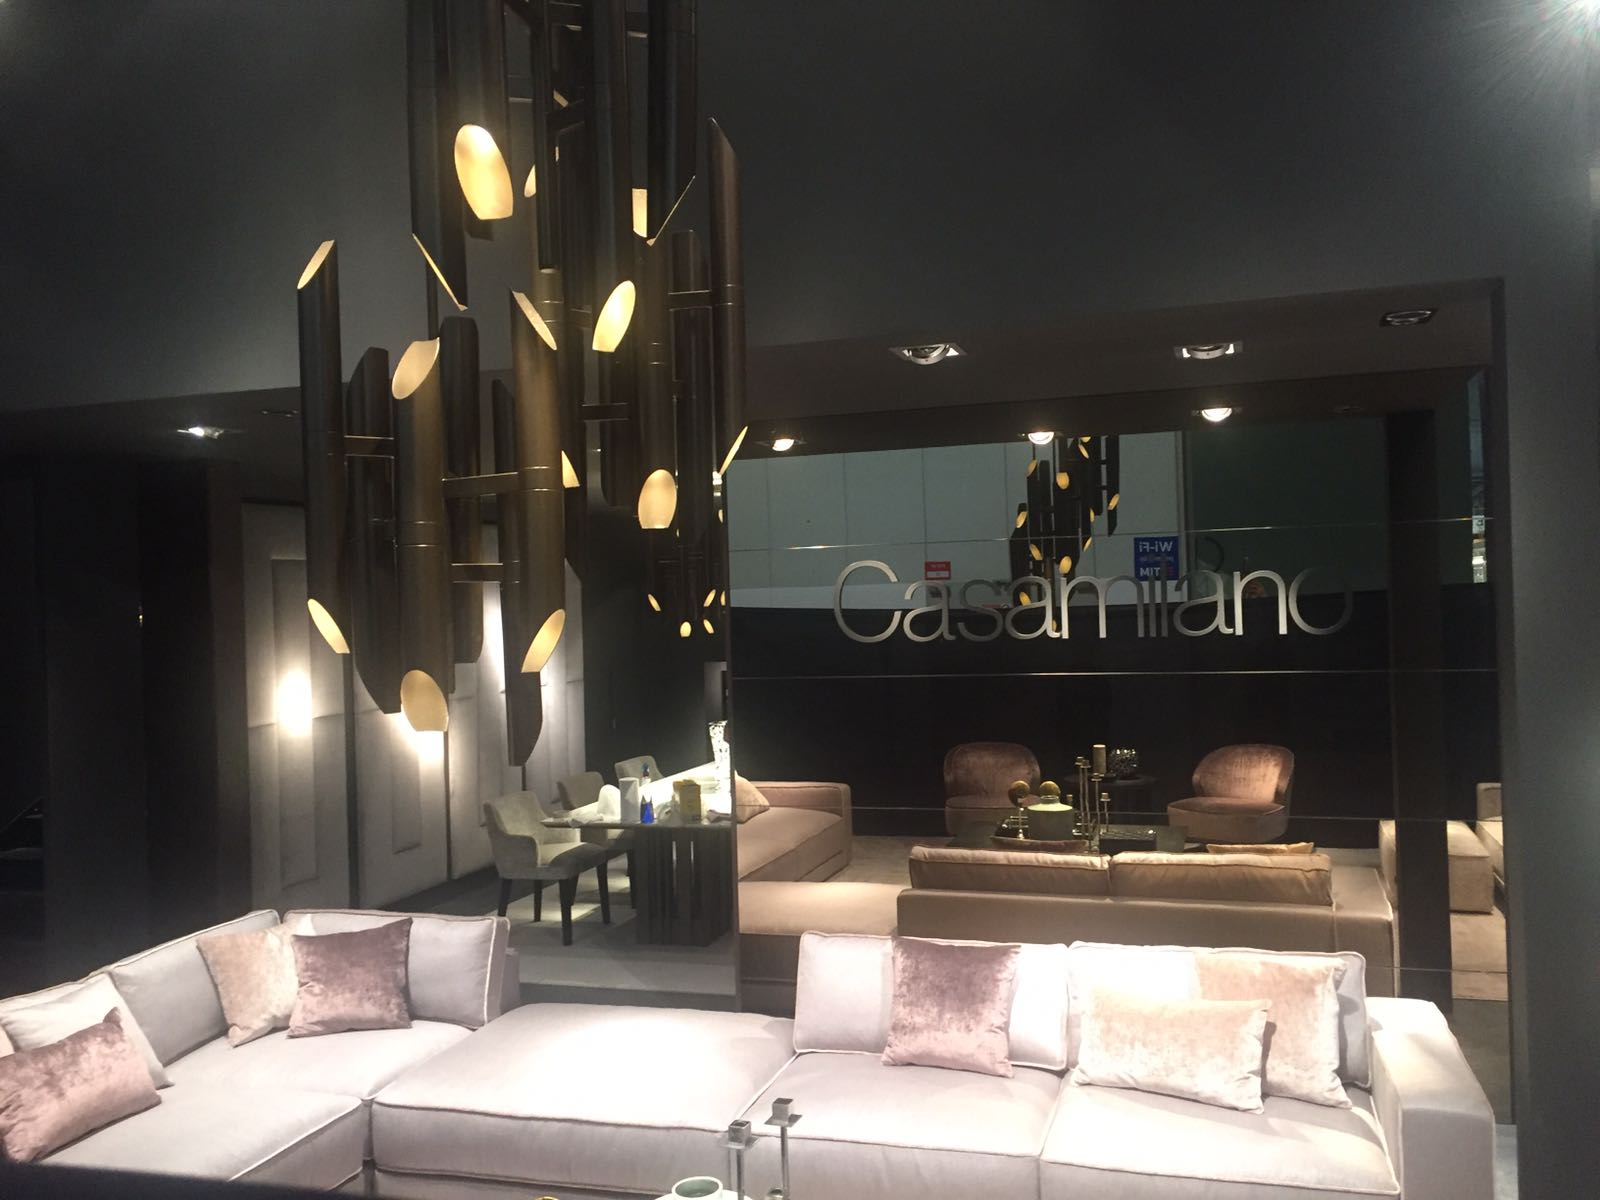 Stands You Must See at ISaloni 2017 Tomorrow salone del mobile 2017 Stands You Must See at Salone del Mobile 2017 Tomorrow Stands You Must See at Salone del Mobile 2017 Tomorrow 1